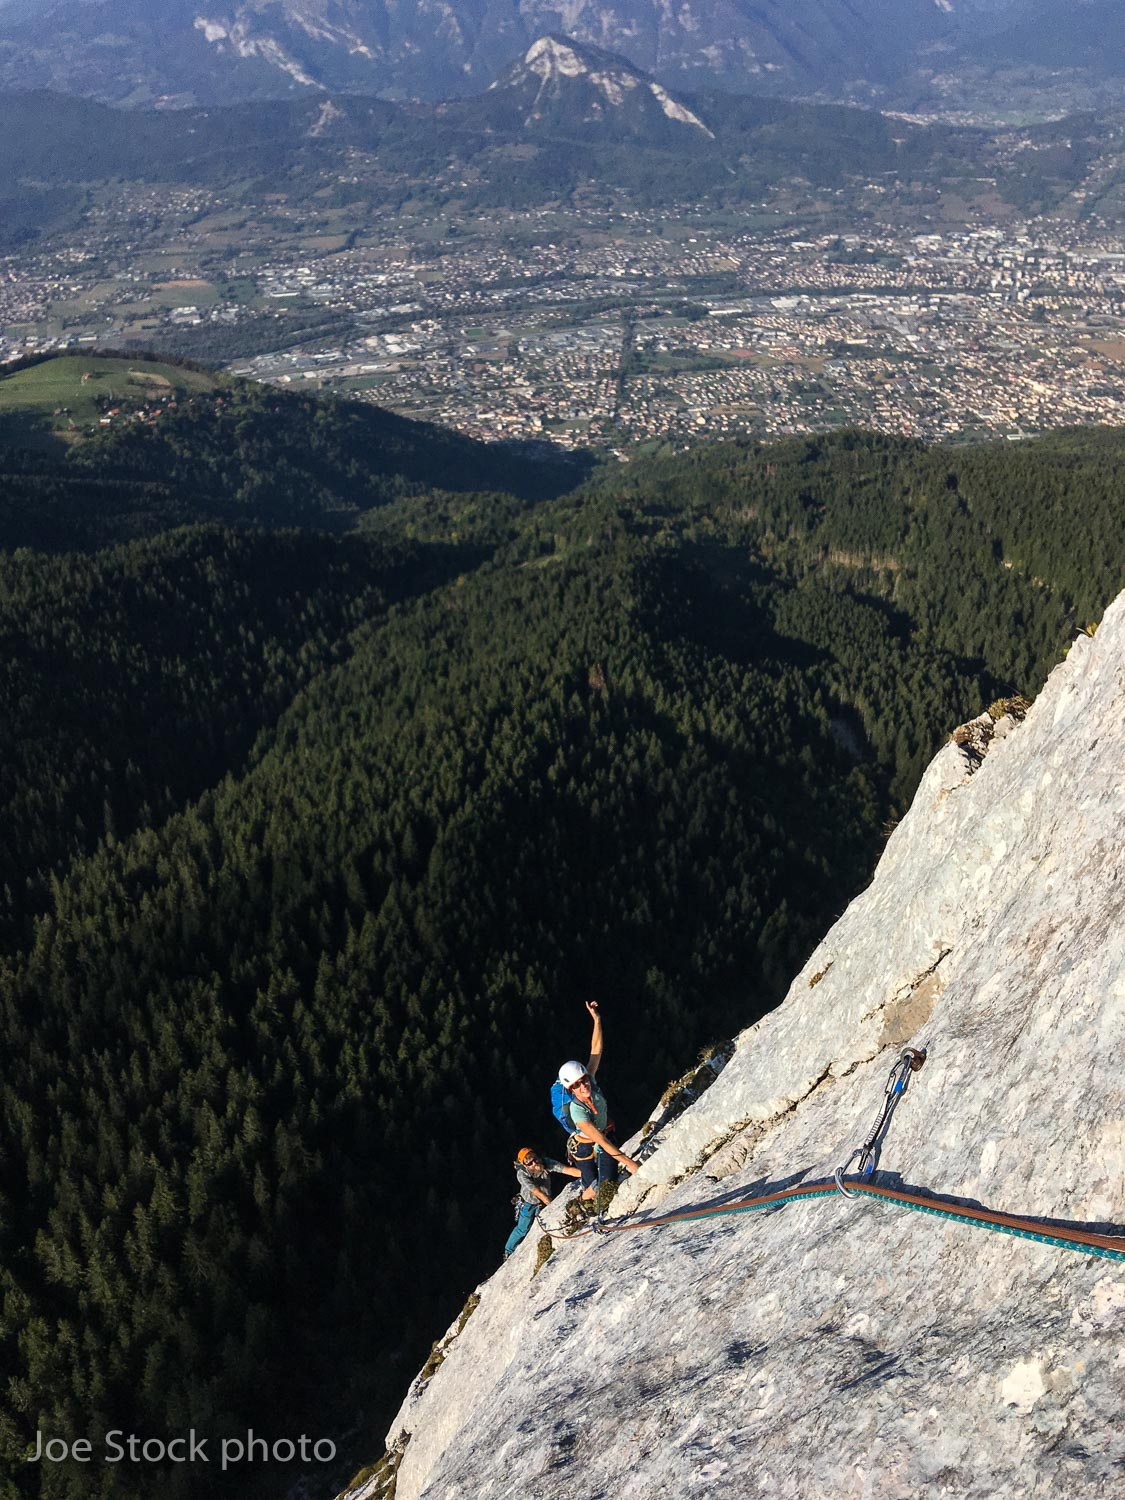 Chris Simmons and Cathy Flanagan above the town of Cluses on Variante à Pétiole on Petite Bargy, a 10-pitch, 300-meter, 5.10a with a walk off.